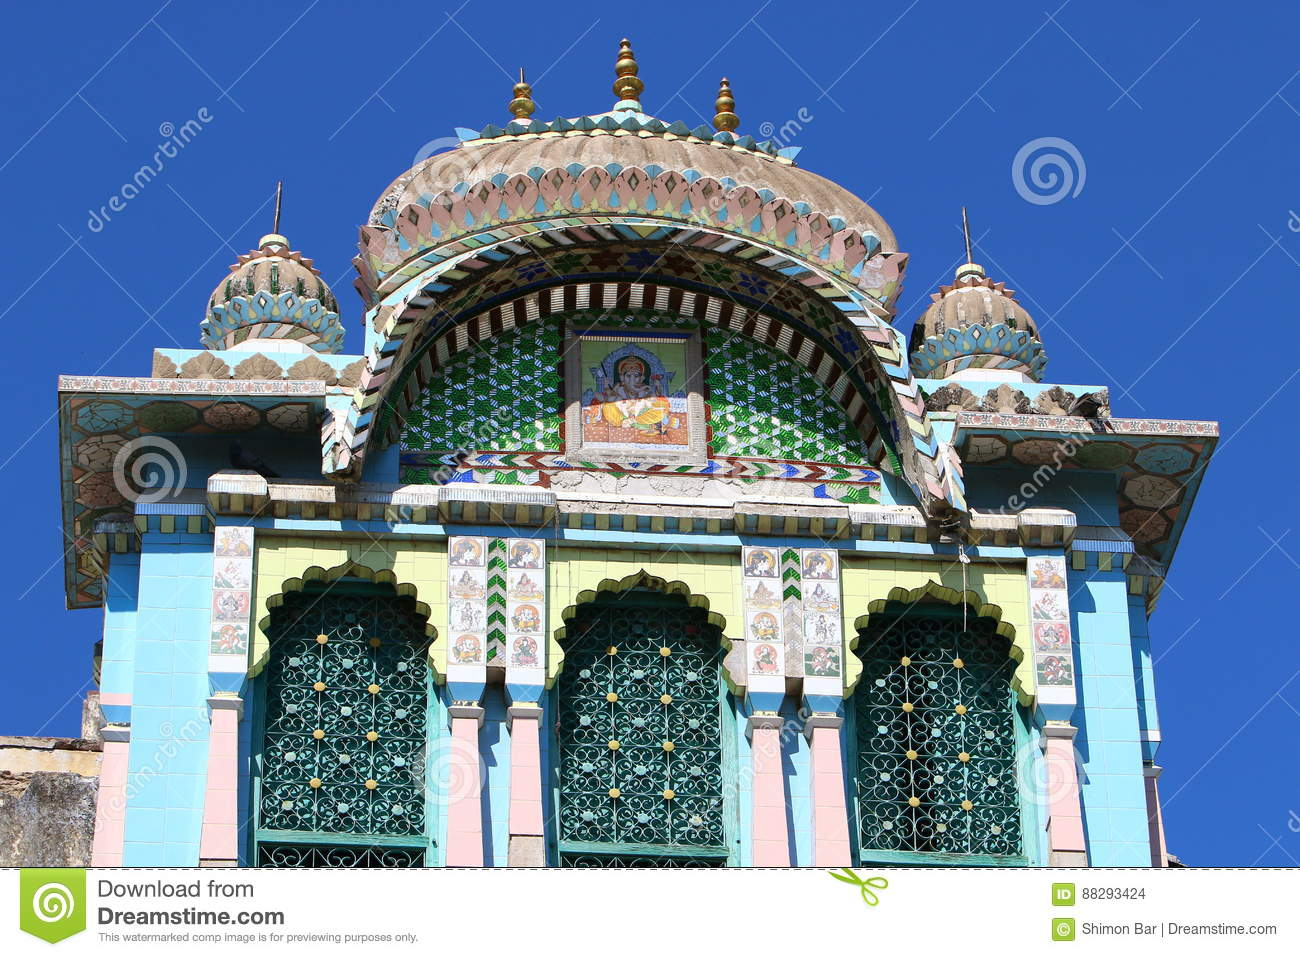 Beautiful pictures of gods and their temple - Beautiful Buddhist Country Deep Every Gods India Jain Palace Significance Temple